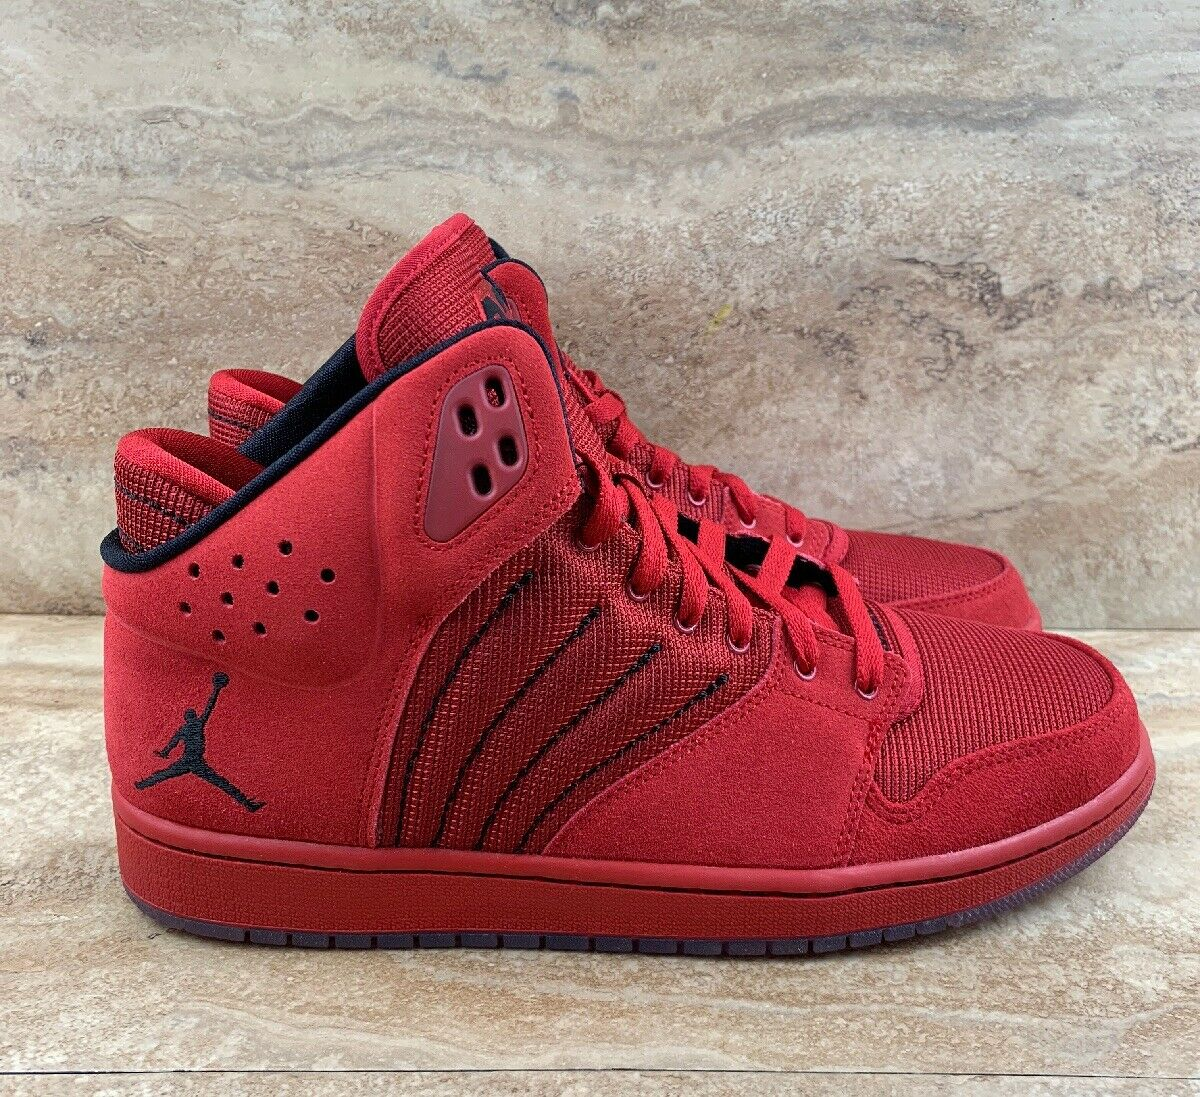 Nike Air Jordan 1 Flight 4 Men's shoes Sneakers Red Retro